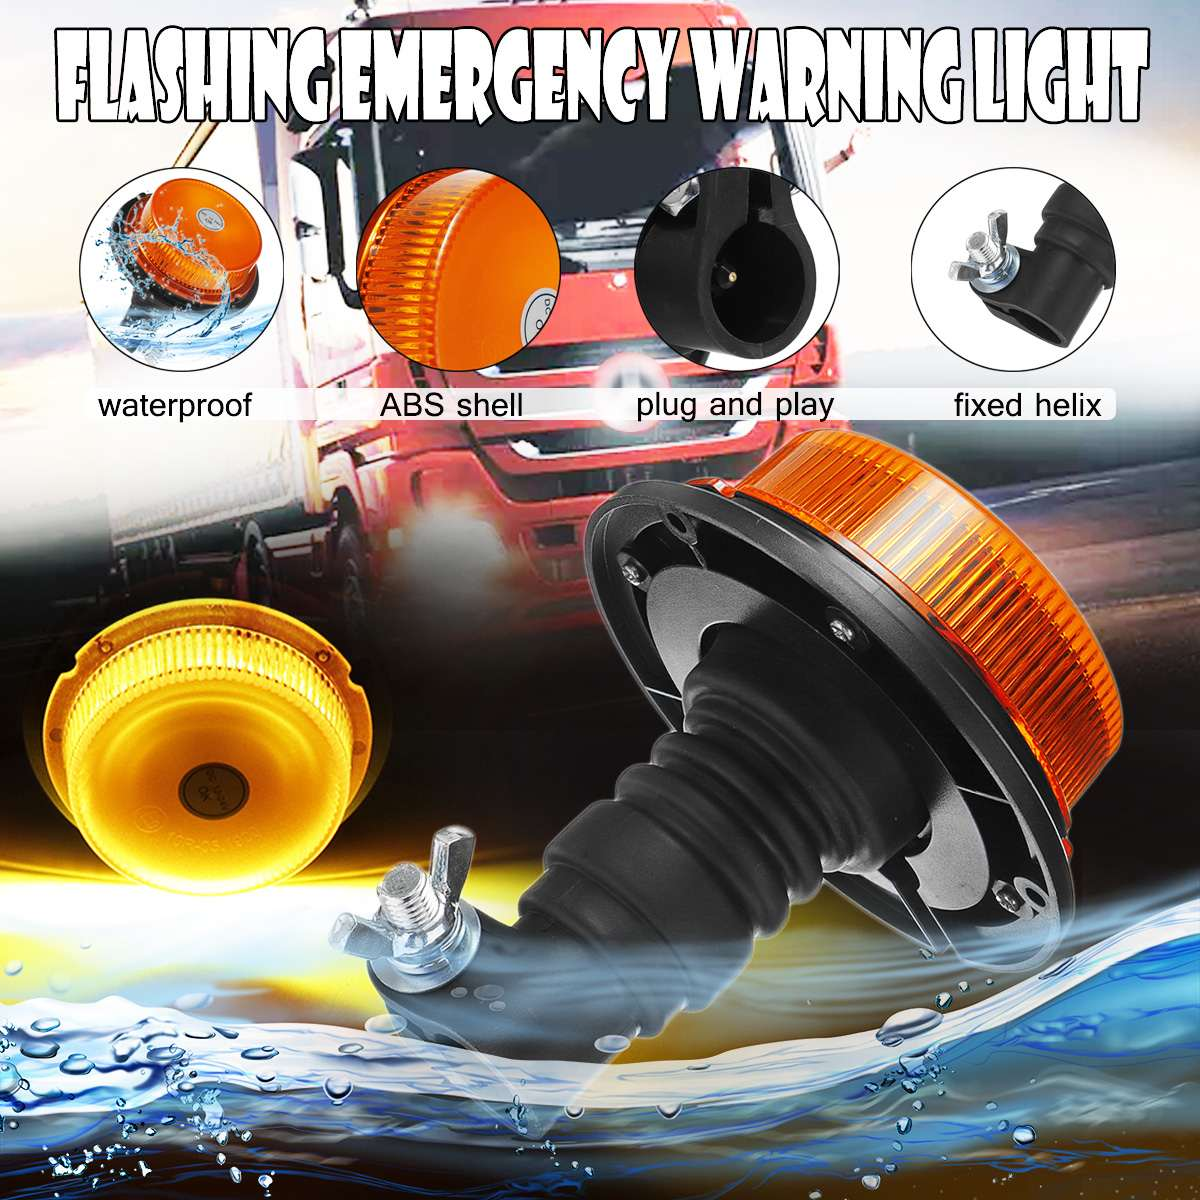 LED Flashing Warning Light Waterproof Car Truck Emergency Light Flashing Firemen Lights 12-24V For Agricultural Vehicle Tractor